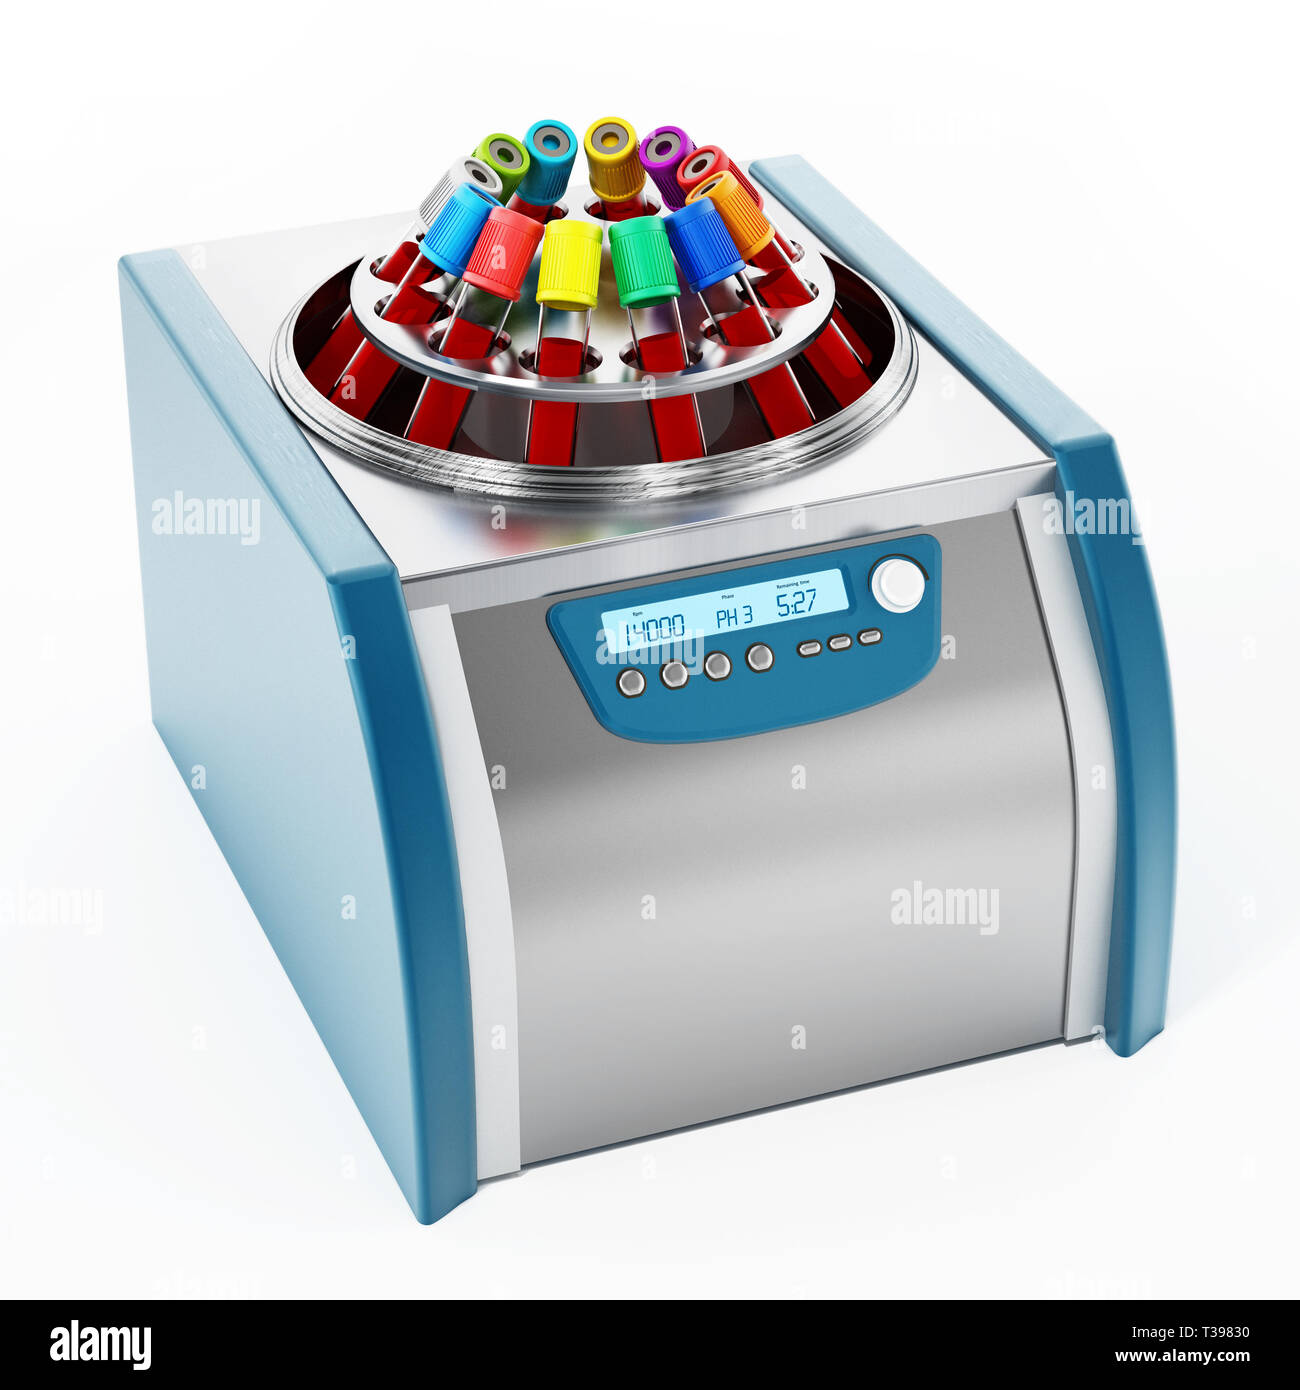 Blood Test Machine Stock Photos & Blood Test Machine Stock